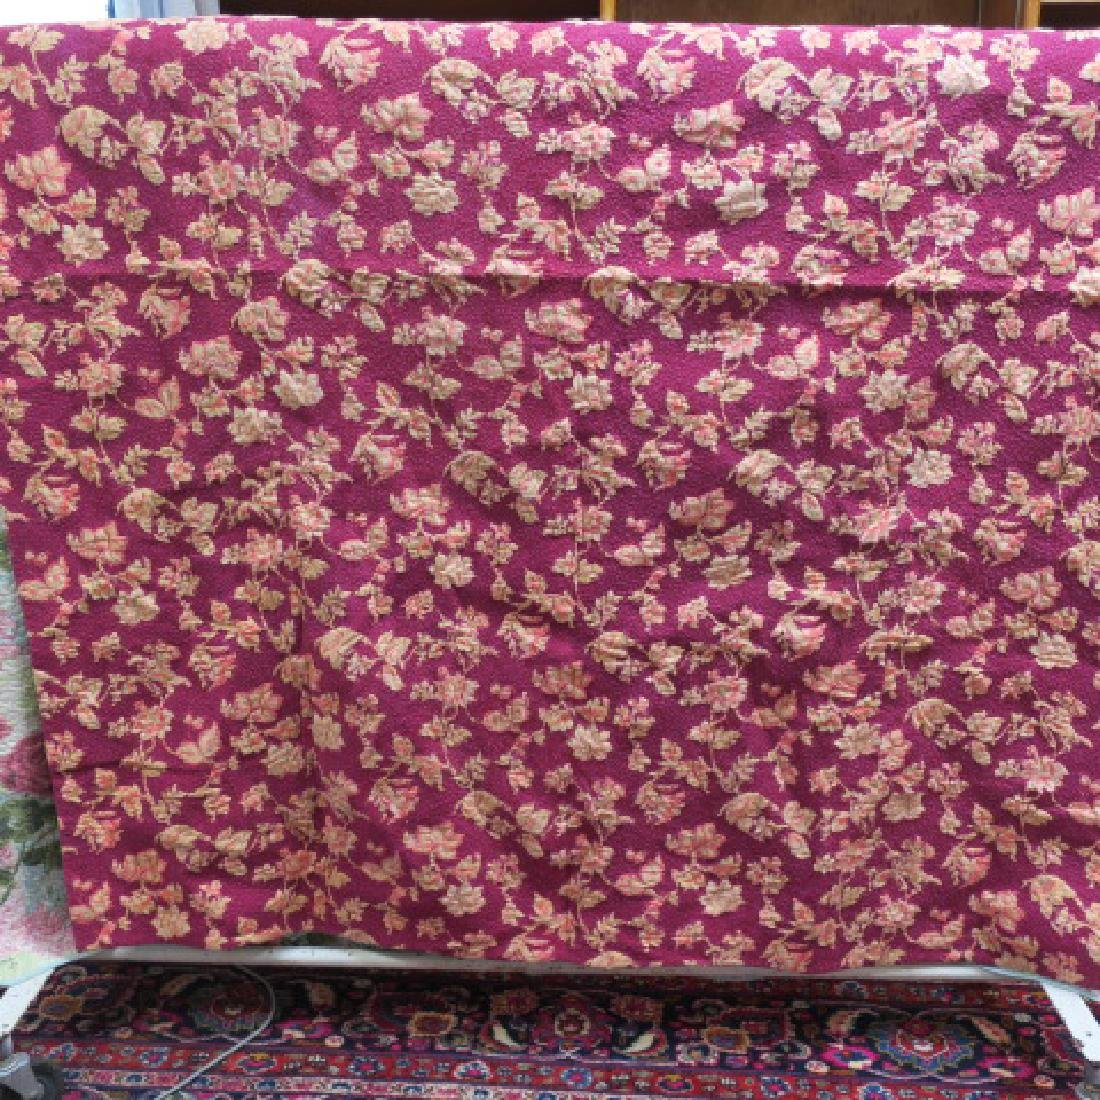 Handstitched Quilt; Red Roses Theme: